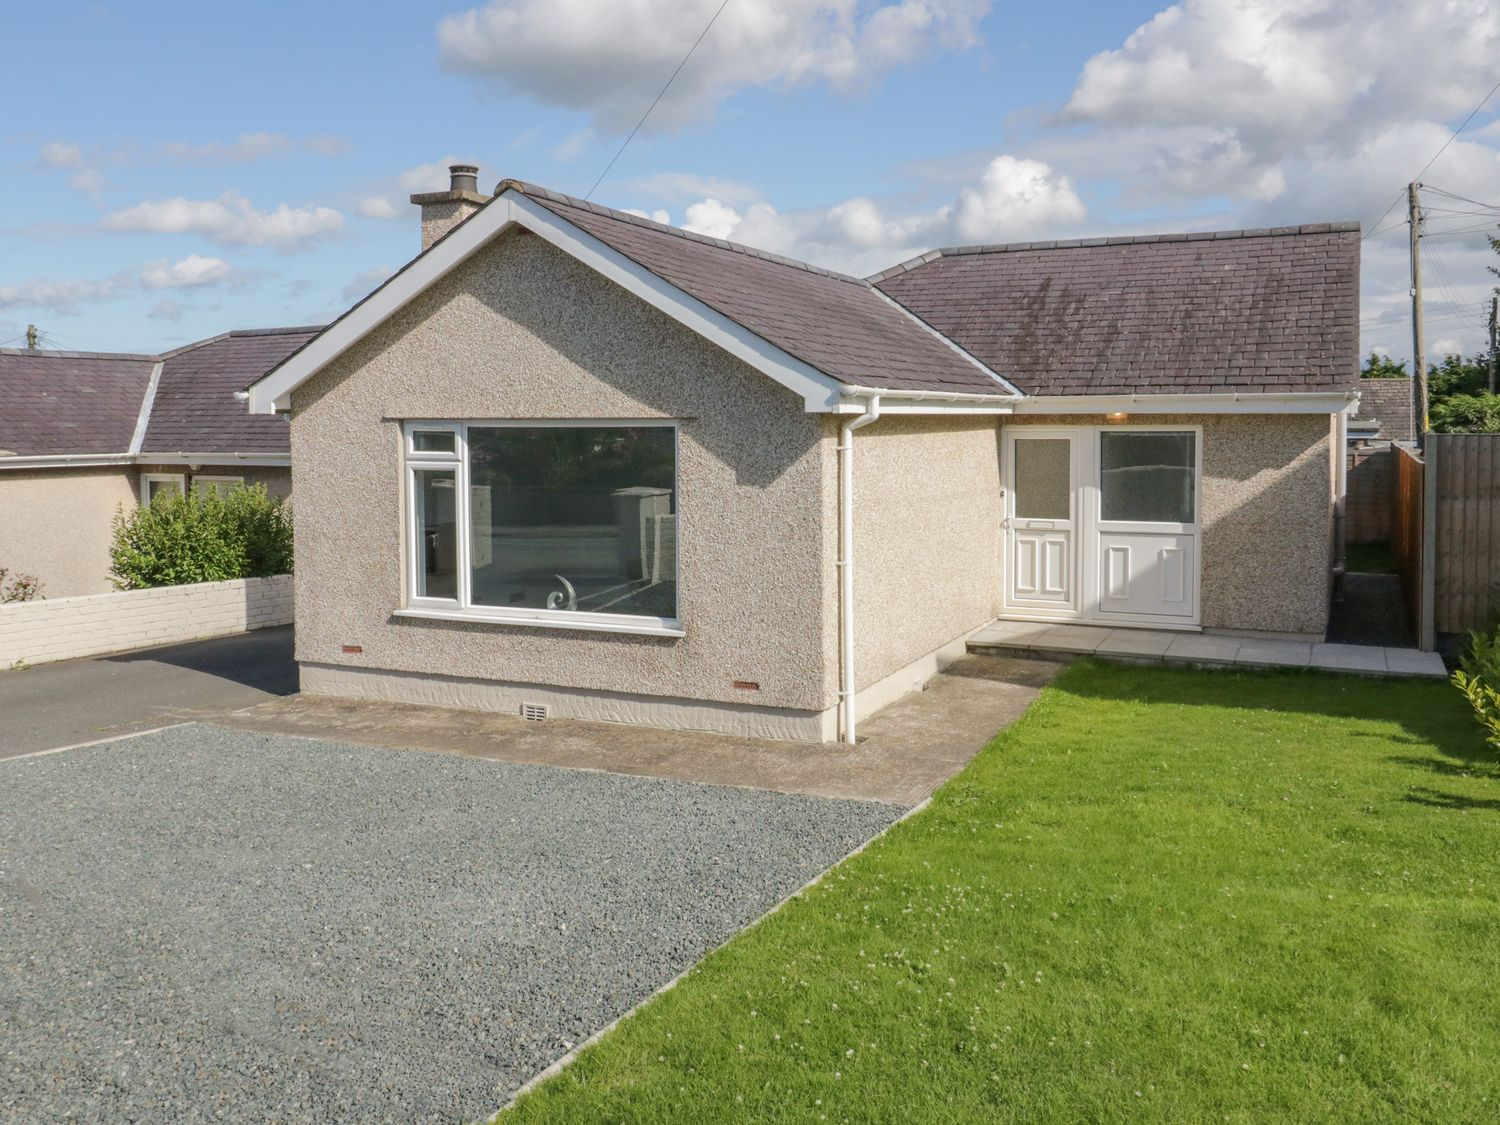 2 Bay View Road - Anglesey - 1037743 - photo 1